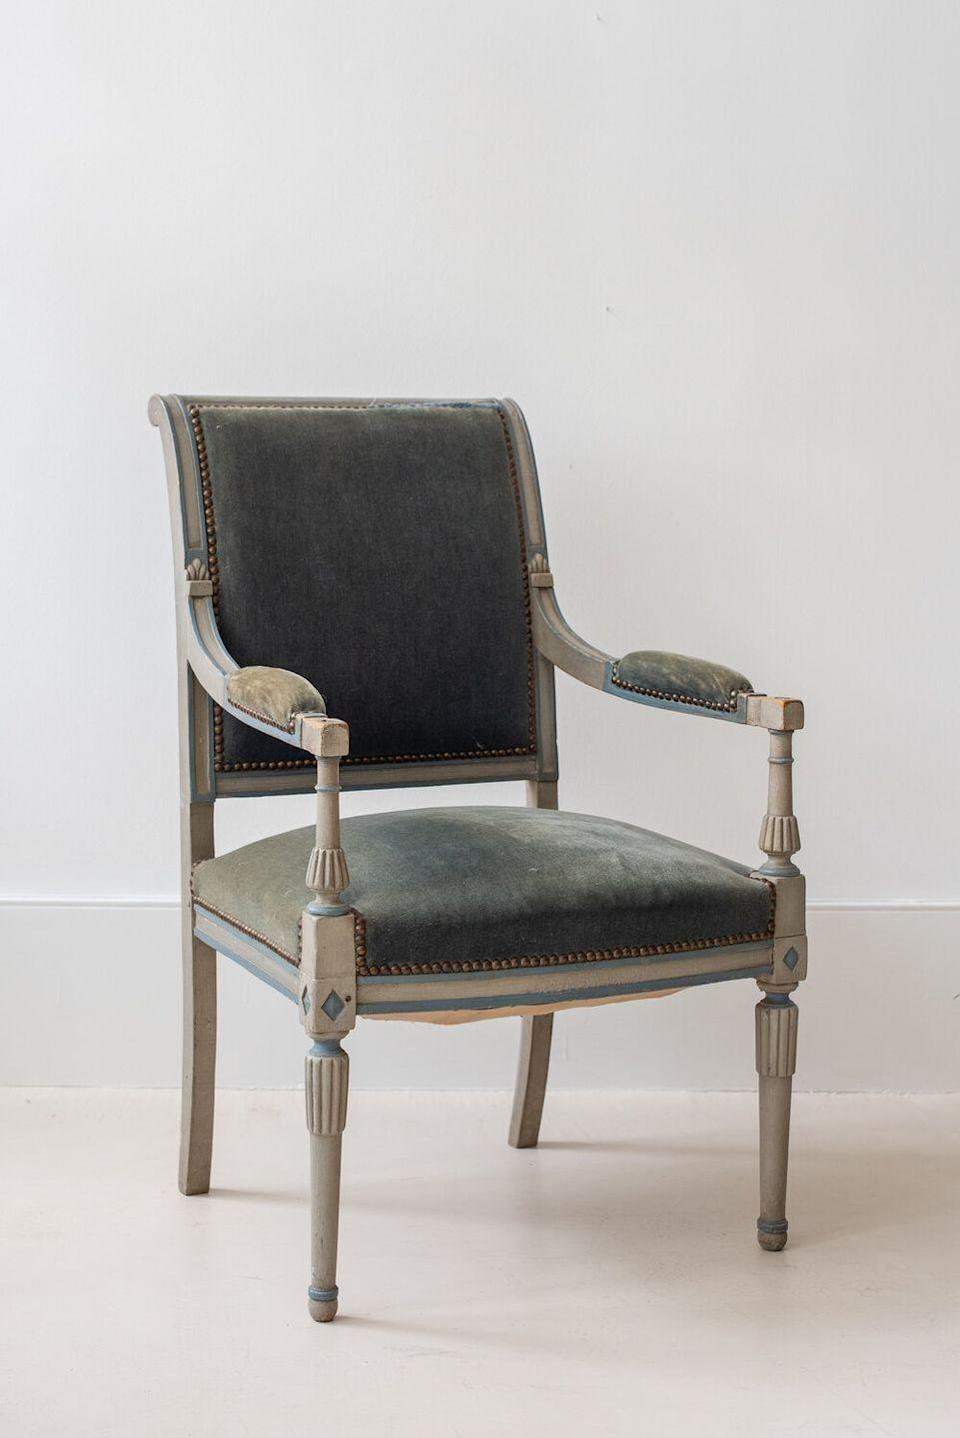 "<p><a class=""link rapid-noclick-resp"" href=""https://www.sundayshop.co/furniture/french-19th-century-second-empire-painted-fauteuil"" rel=""nofollow noopener"" target=""_blank"" data-ylk=""slk:Discover"">Discover</a></p><p>The perfect candidate for a statement piece of furniture, this painted armchair hails from France and stuns with its beautiful detail and gray-blue upholstery. </p>"